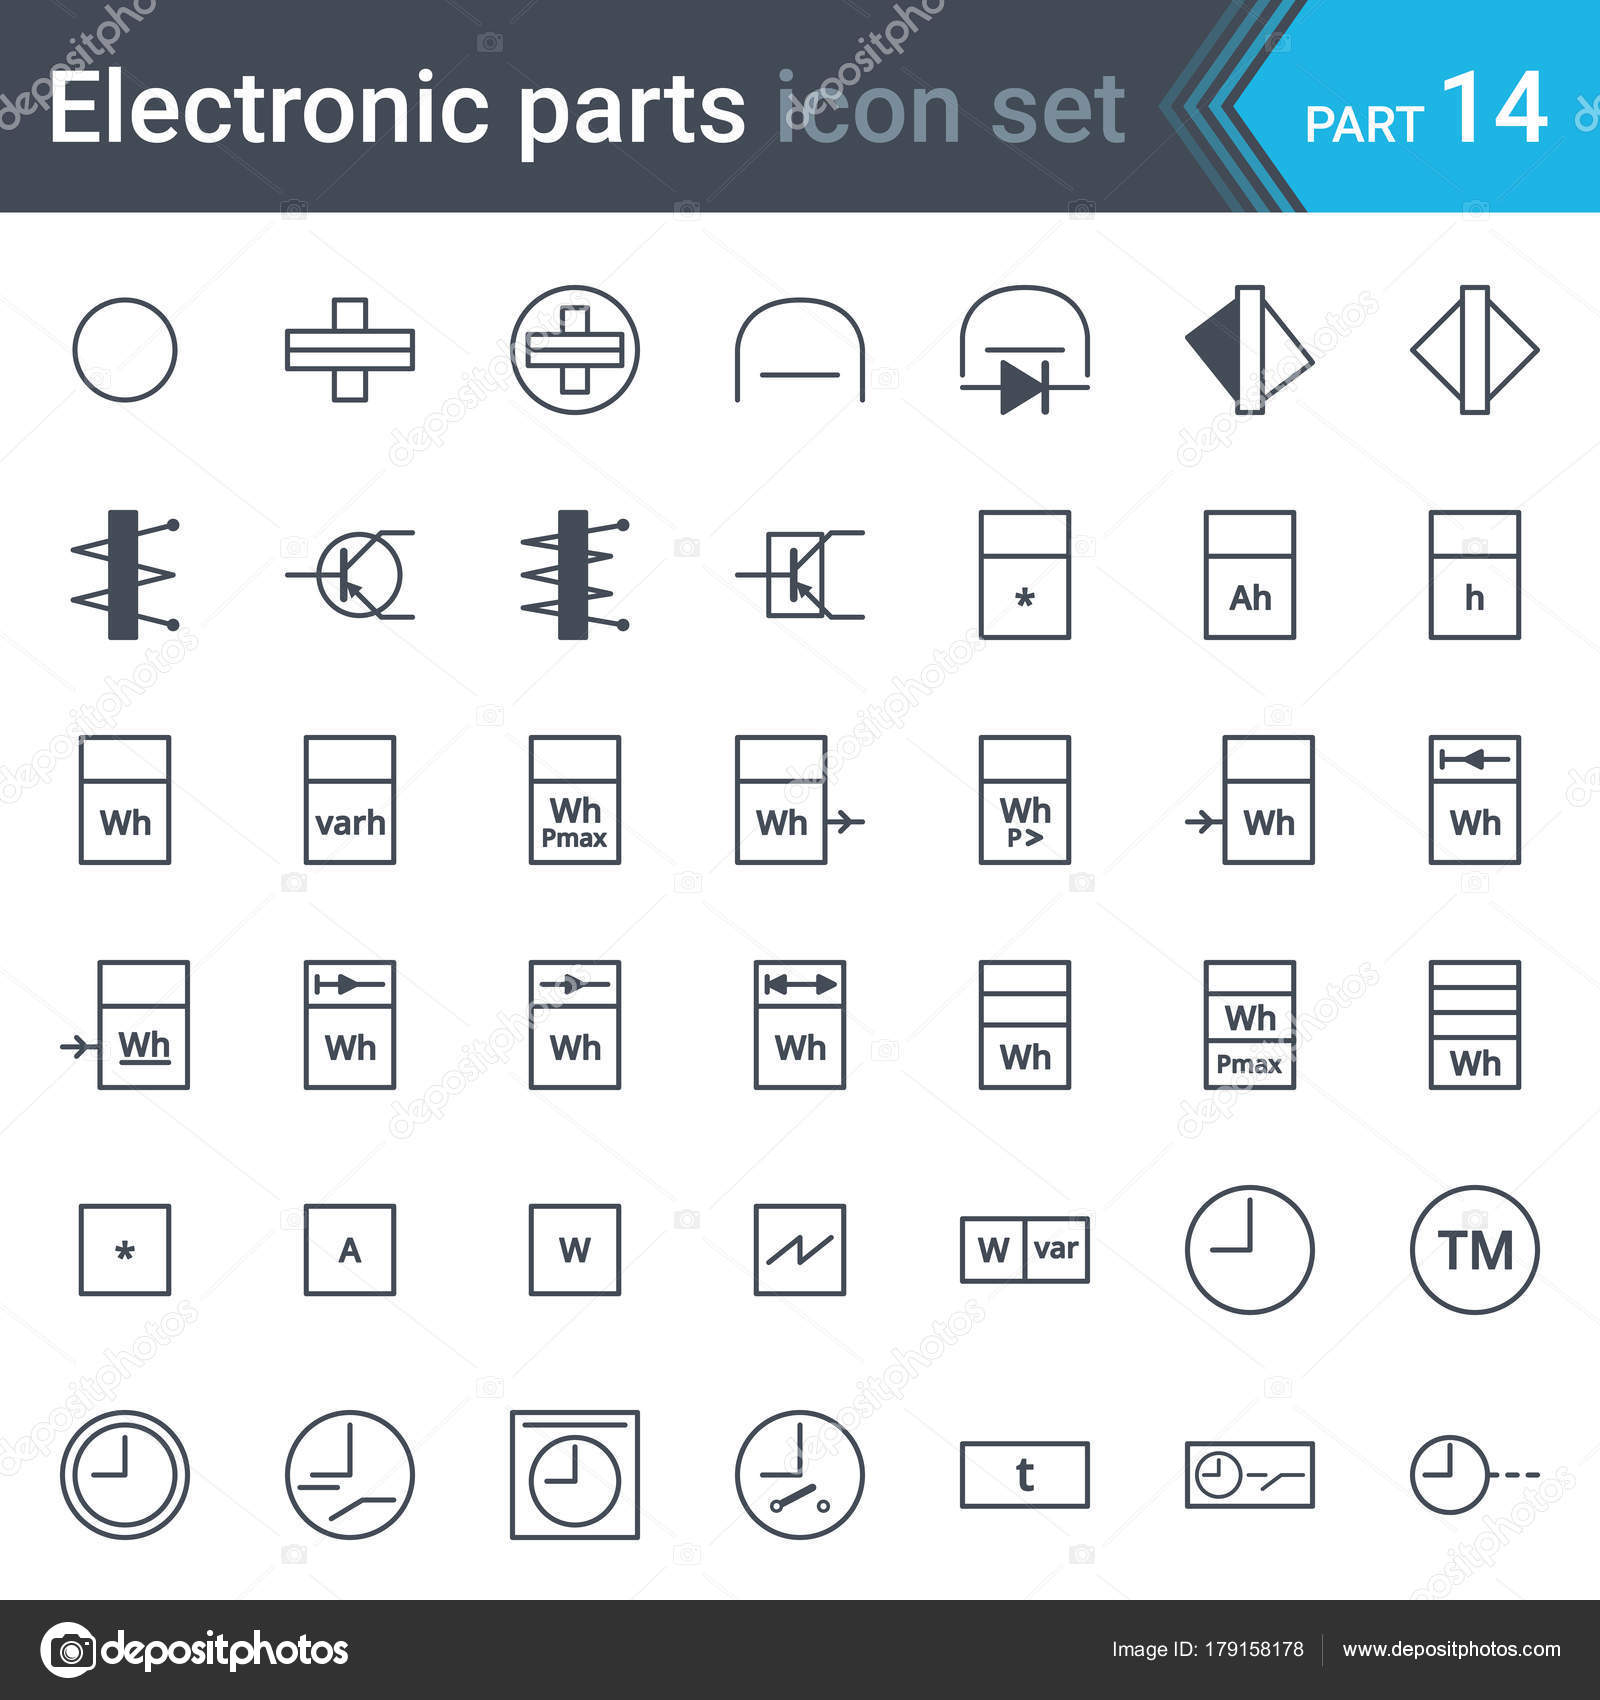 Electric Electronic Circuit Diagram Symbols Set Electrical ...